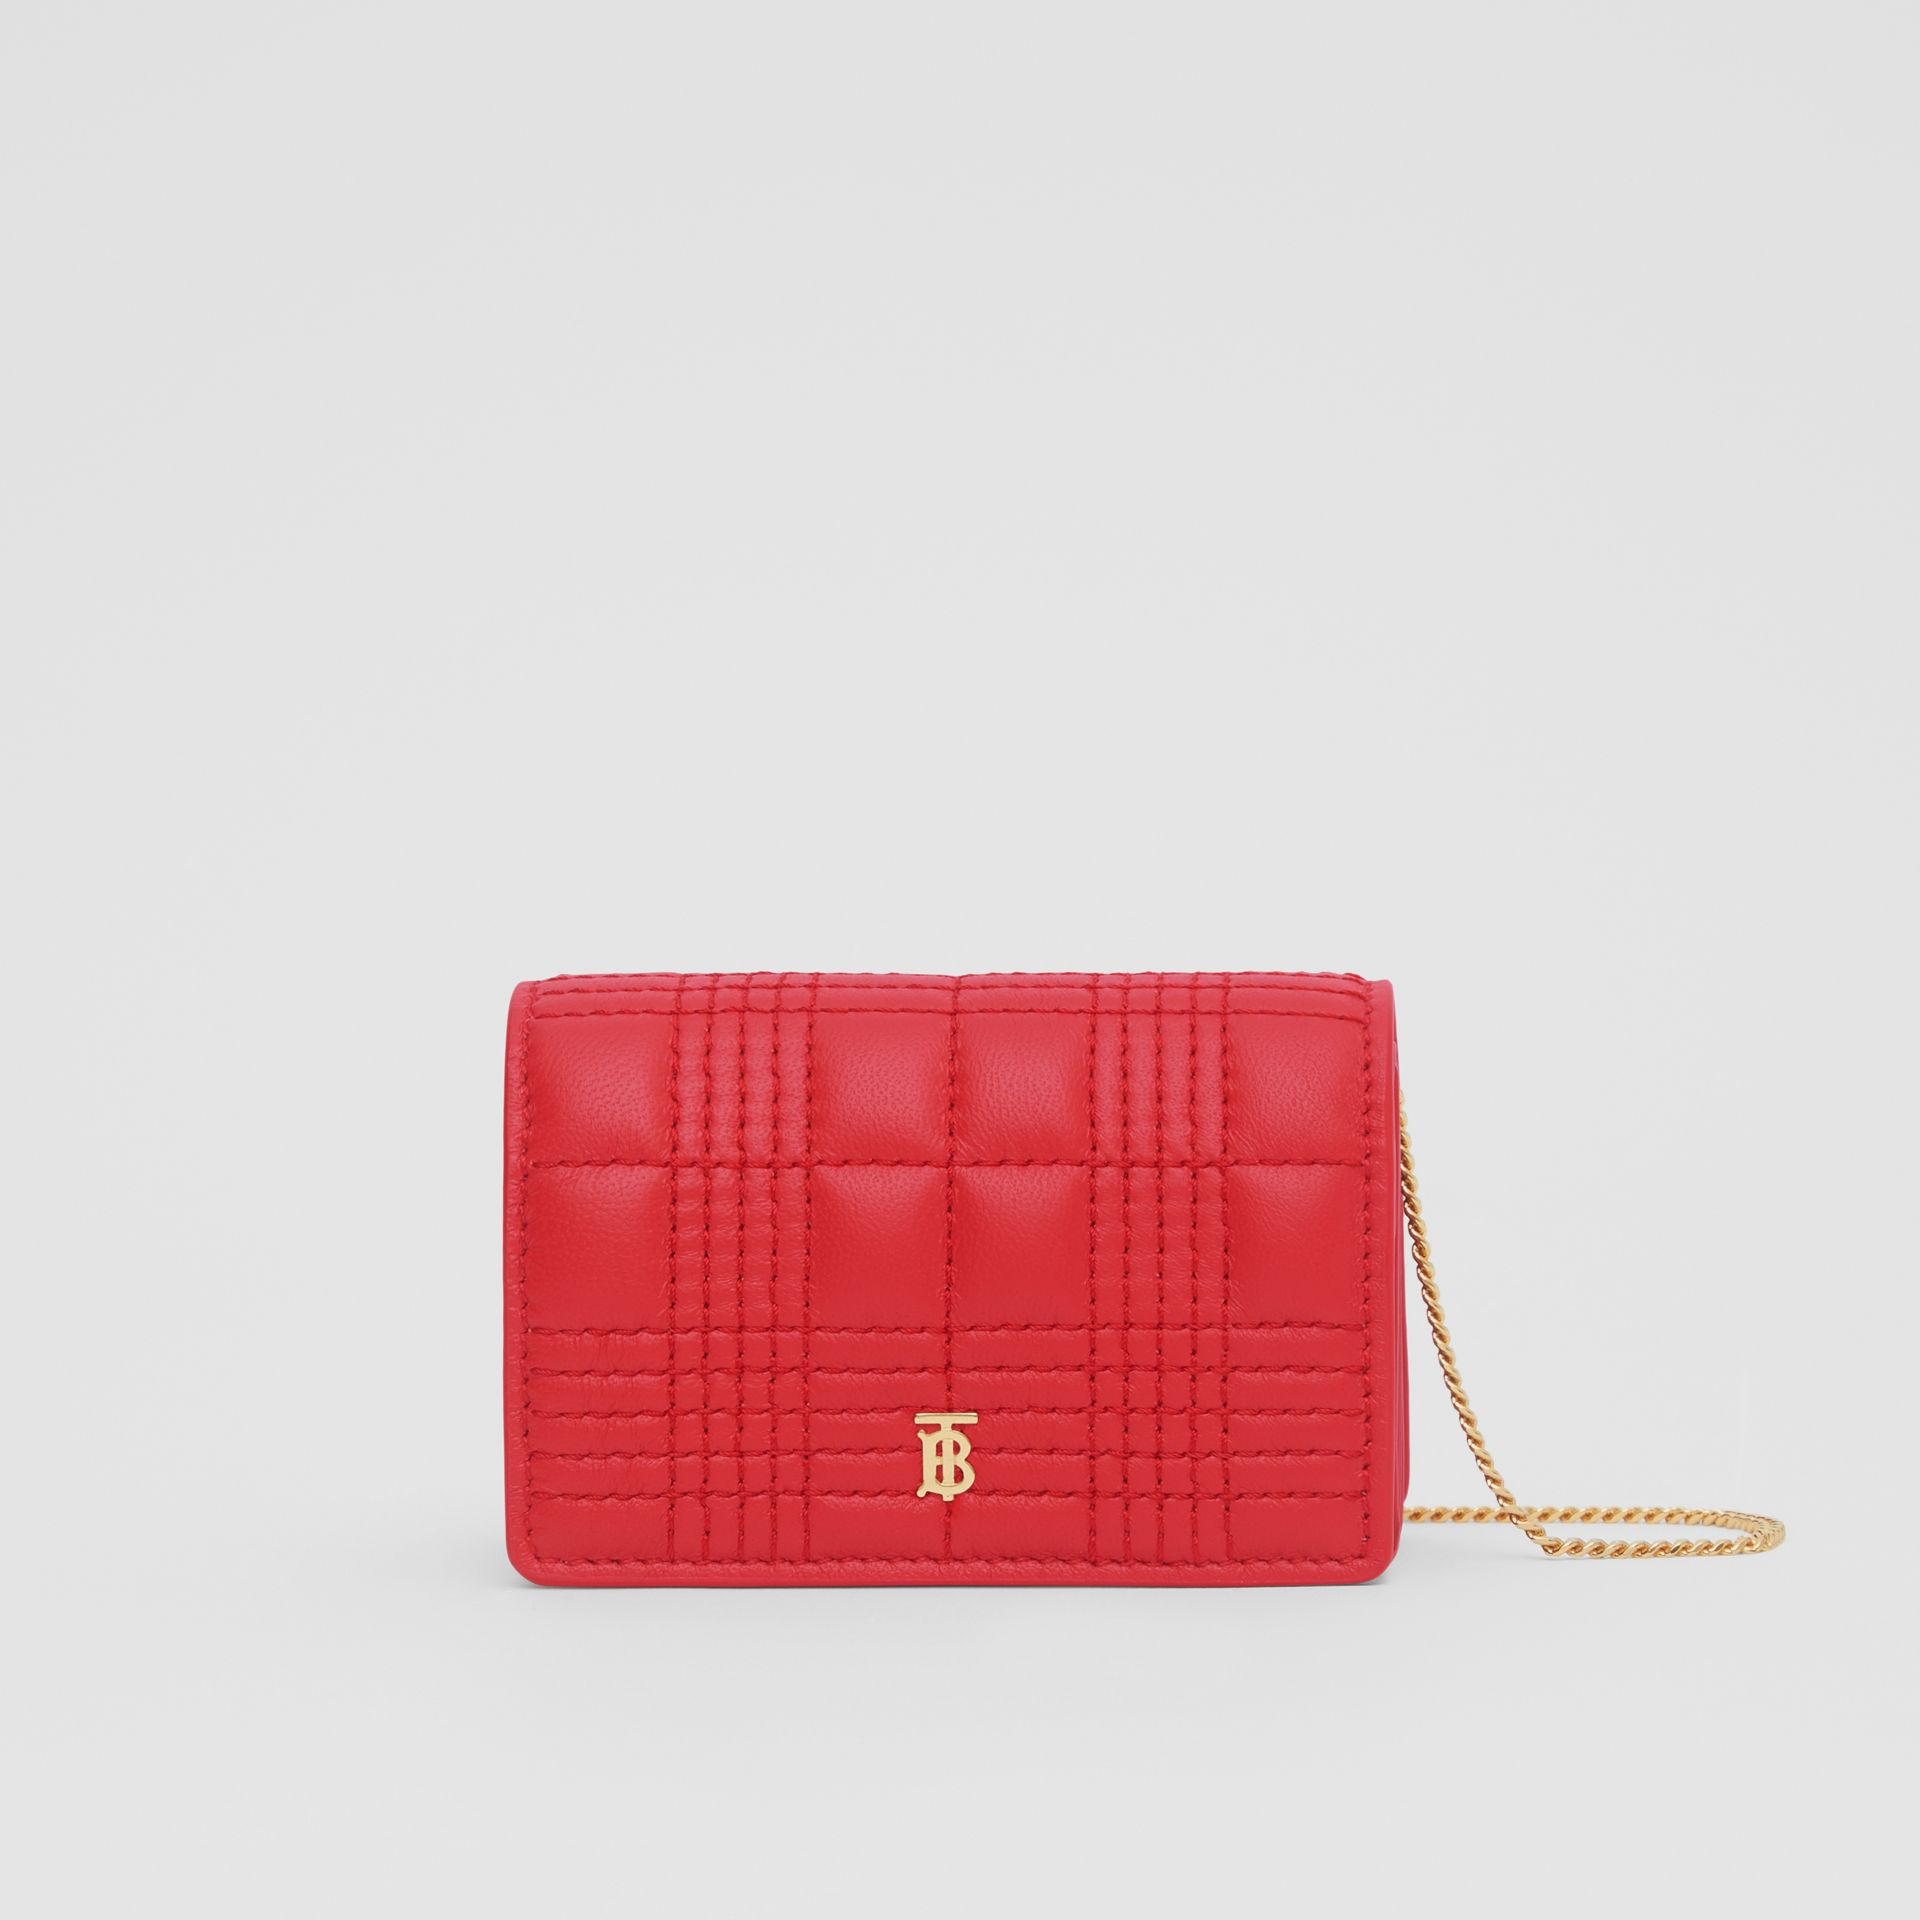 Porte-cartes en cuir d'agneau matelassé avec sangle amovible (Rouge Vif) | Burberry Canada - photo de la galerie 0